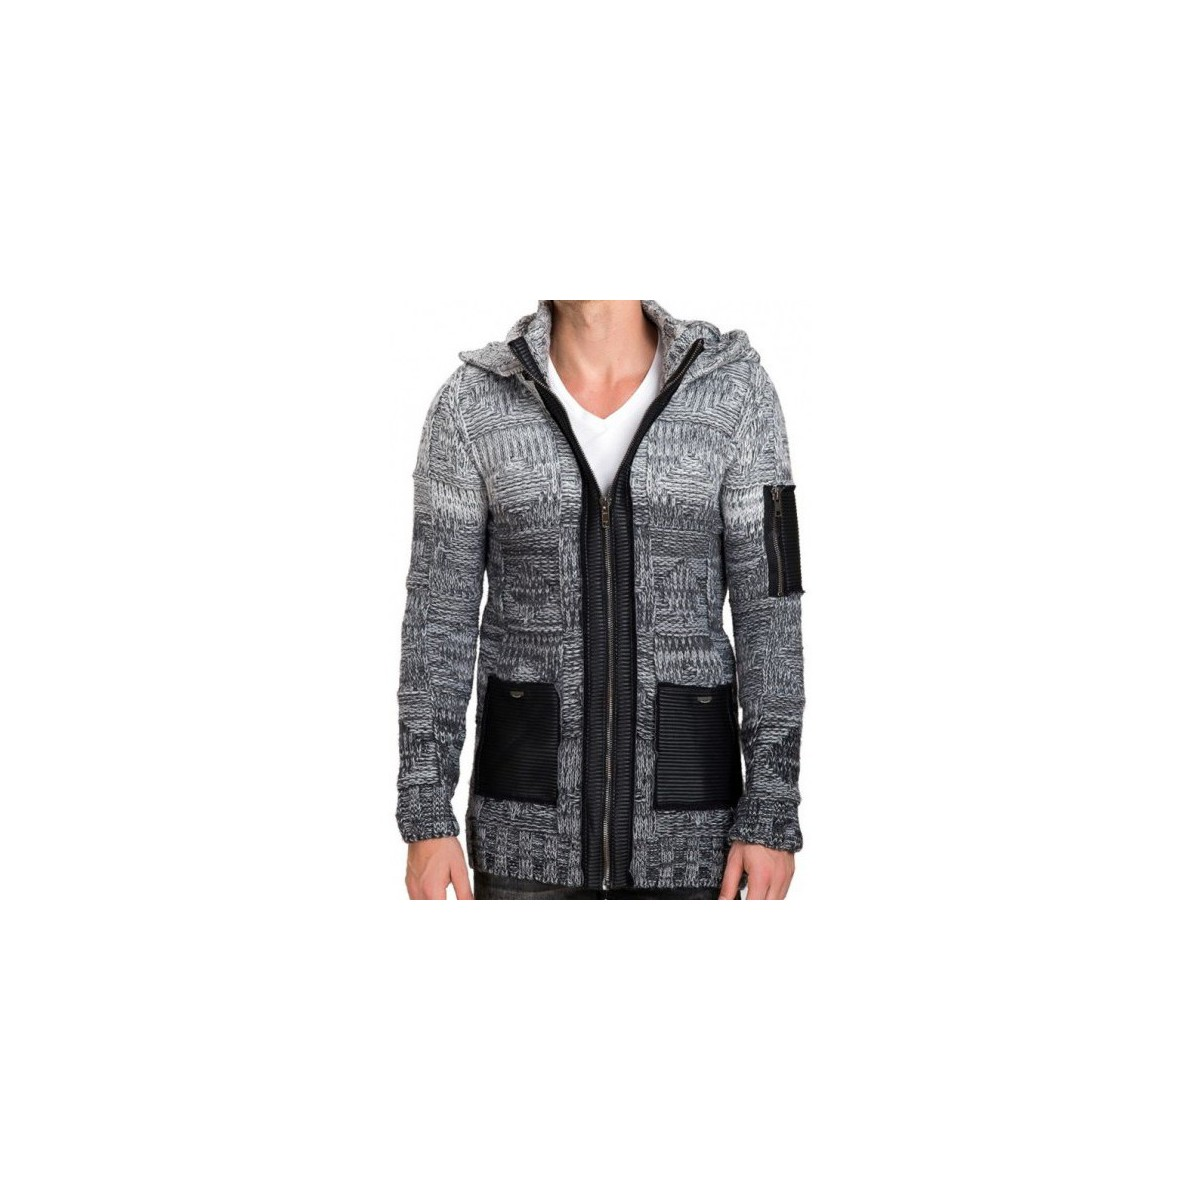 Beststyle Gilet homme long capuche Gris